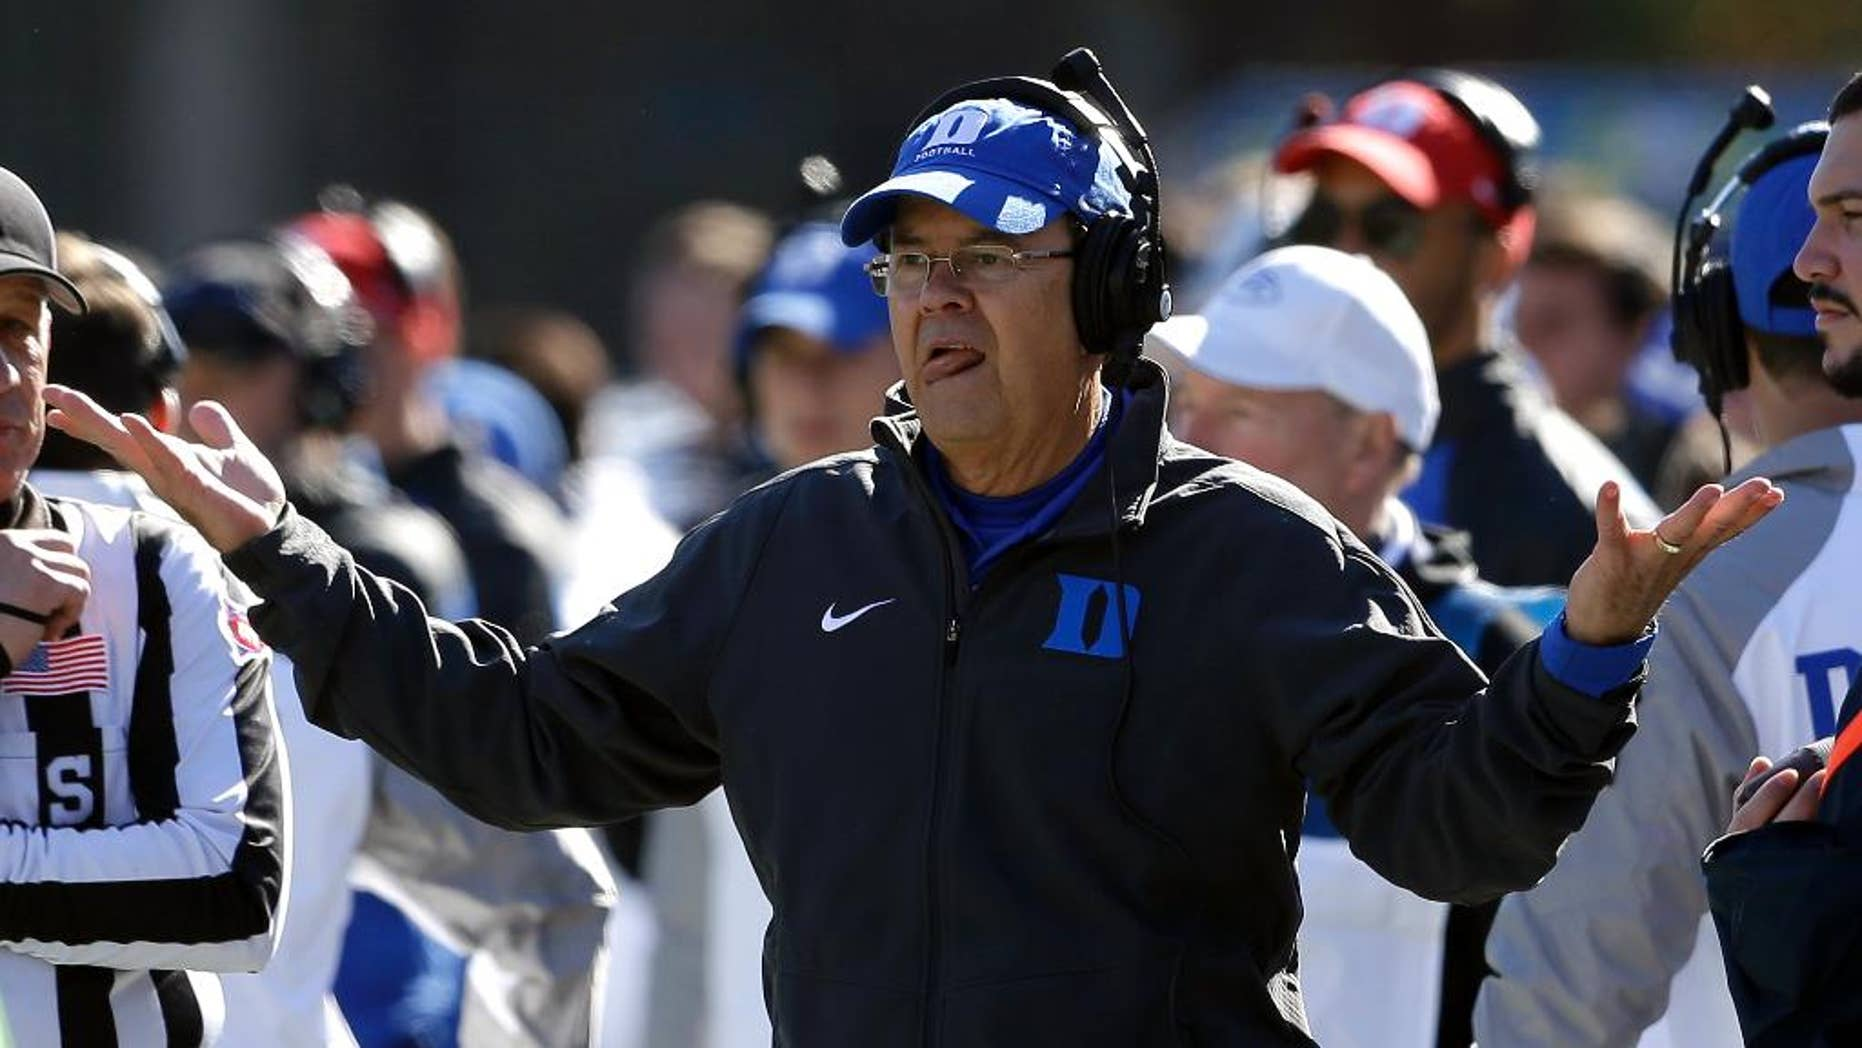 Duke coach David Cutcliffe reacts during the first half of an NCAA college football game against Virginia Tech in Durham, N.C., Saturday, Nov. 15, 2014. Virginia Tech won 17-16. (AP Photo/Gerry Broome)